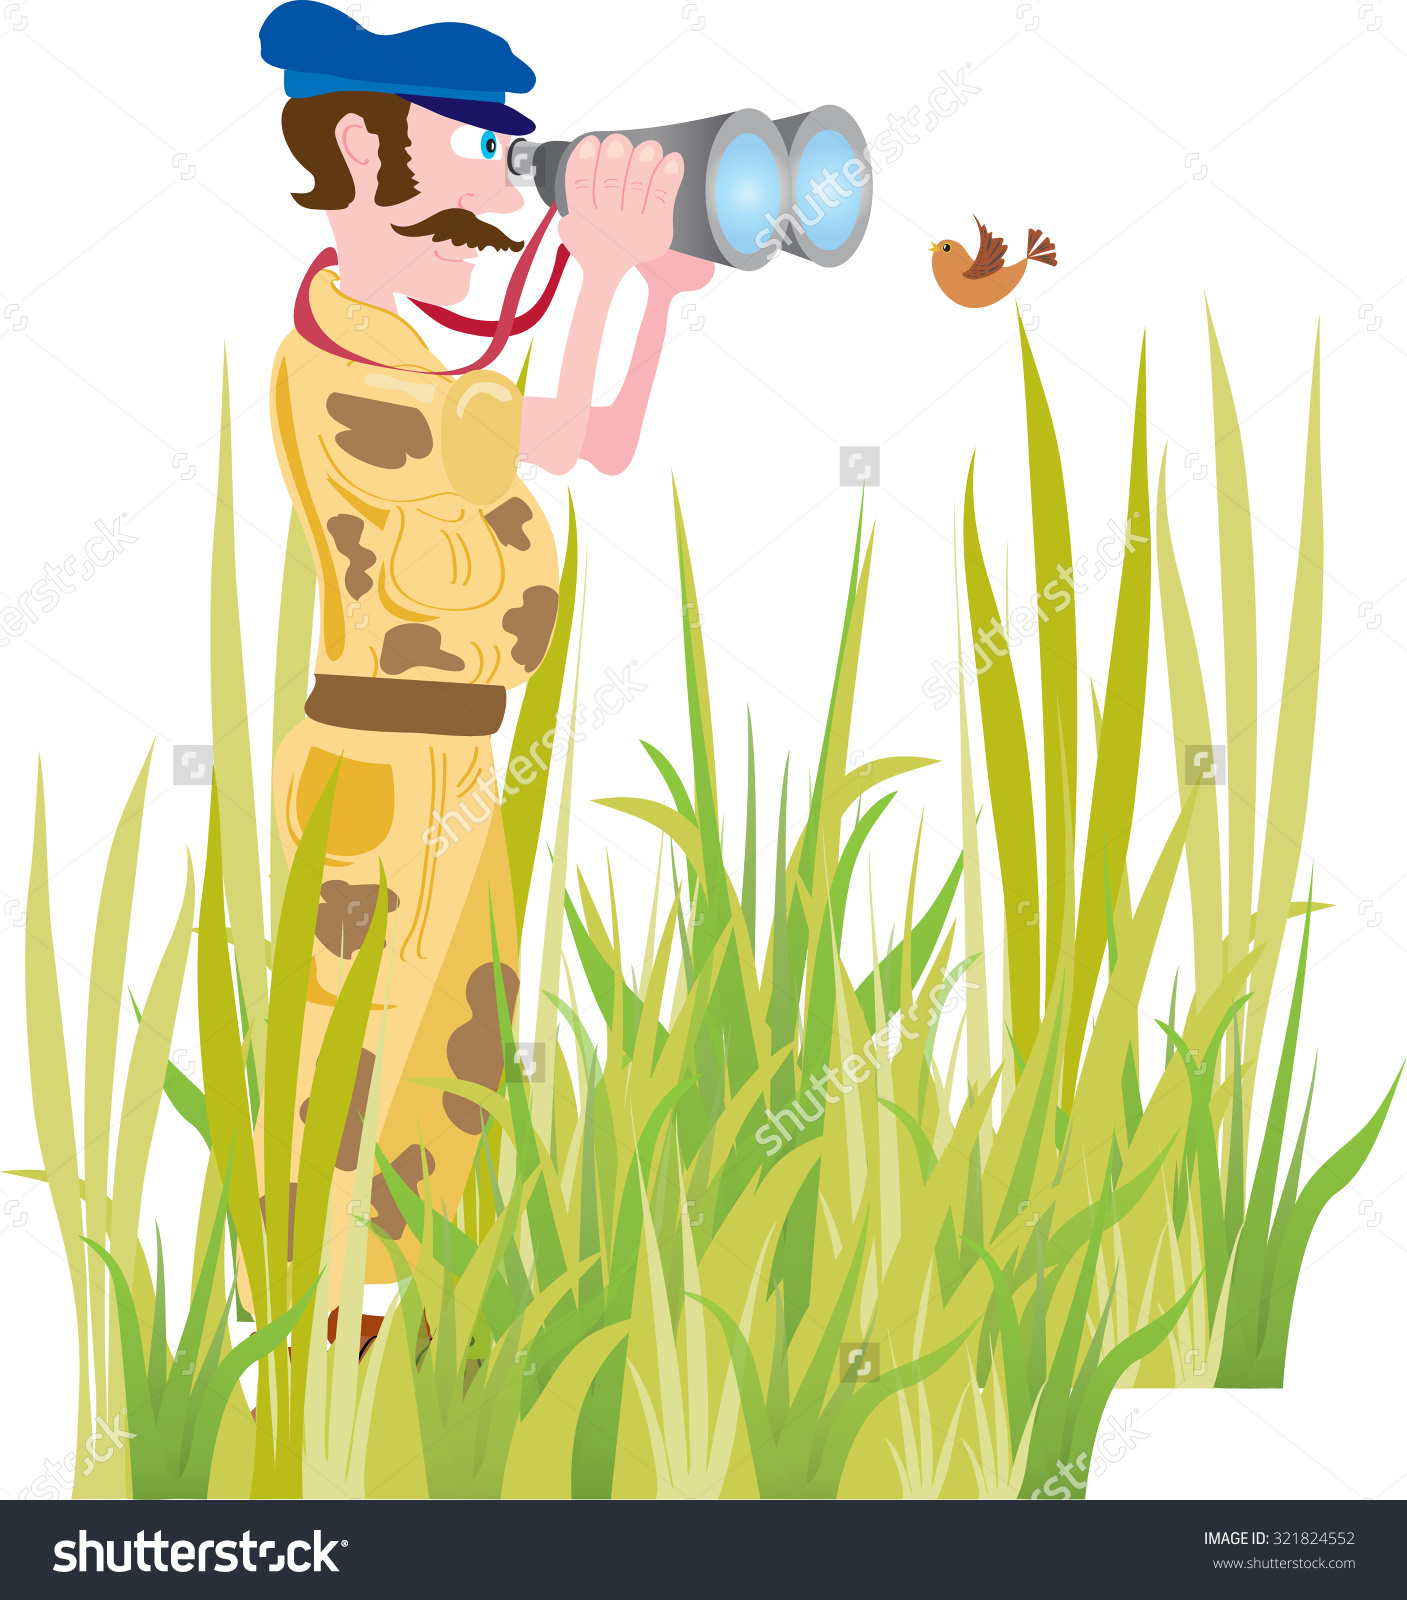 Cartoon Man Bird Watching Hes Dressed Stock Vector 321824552.